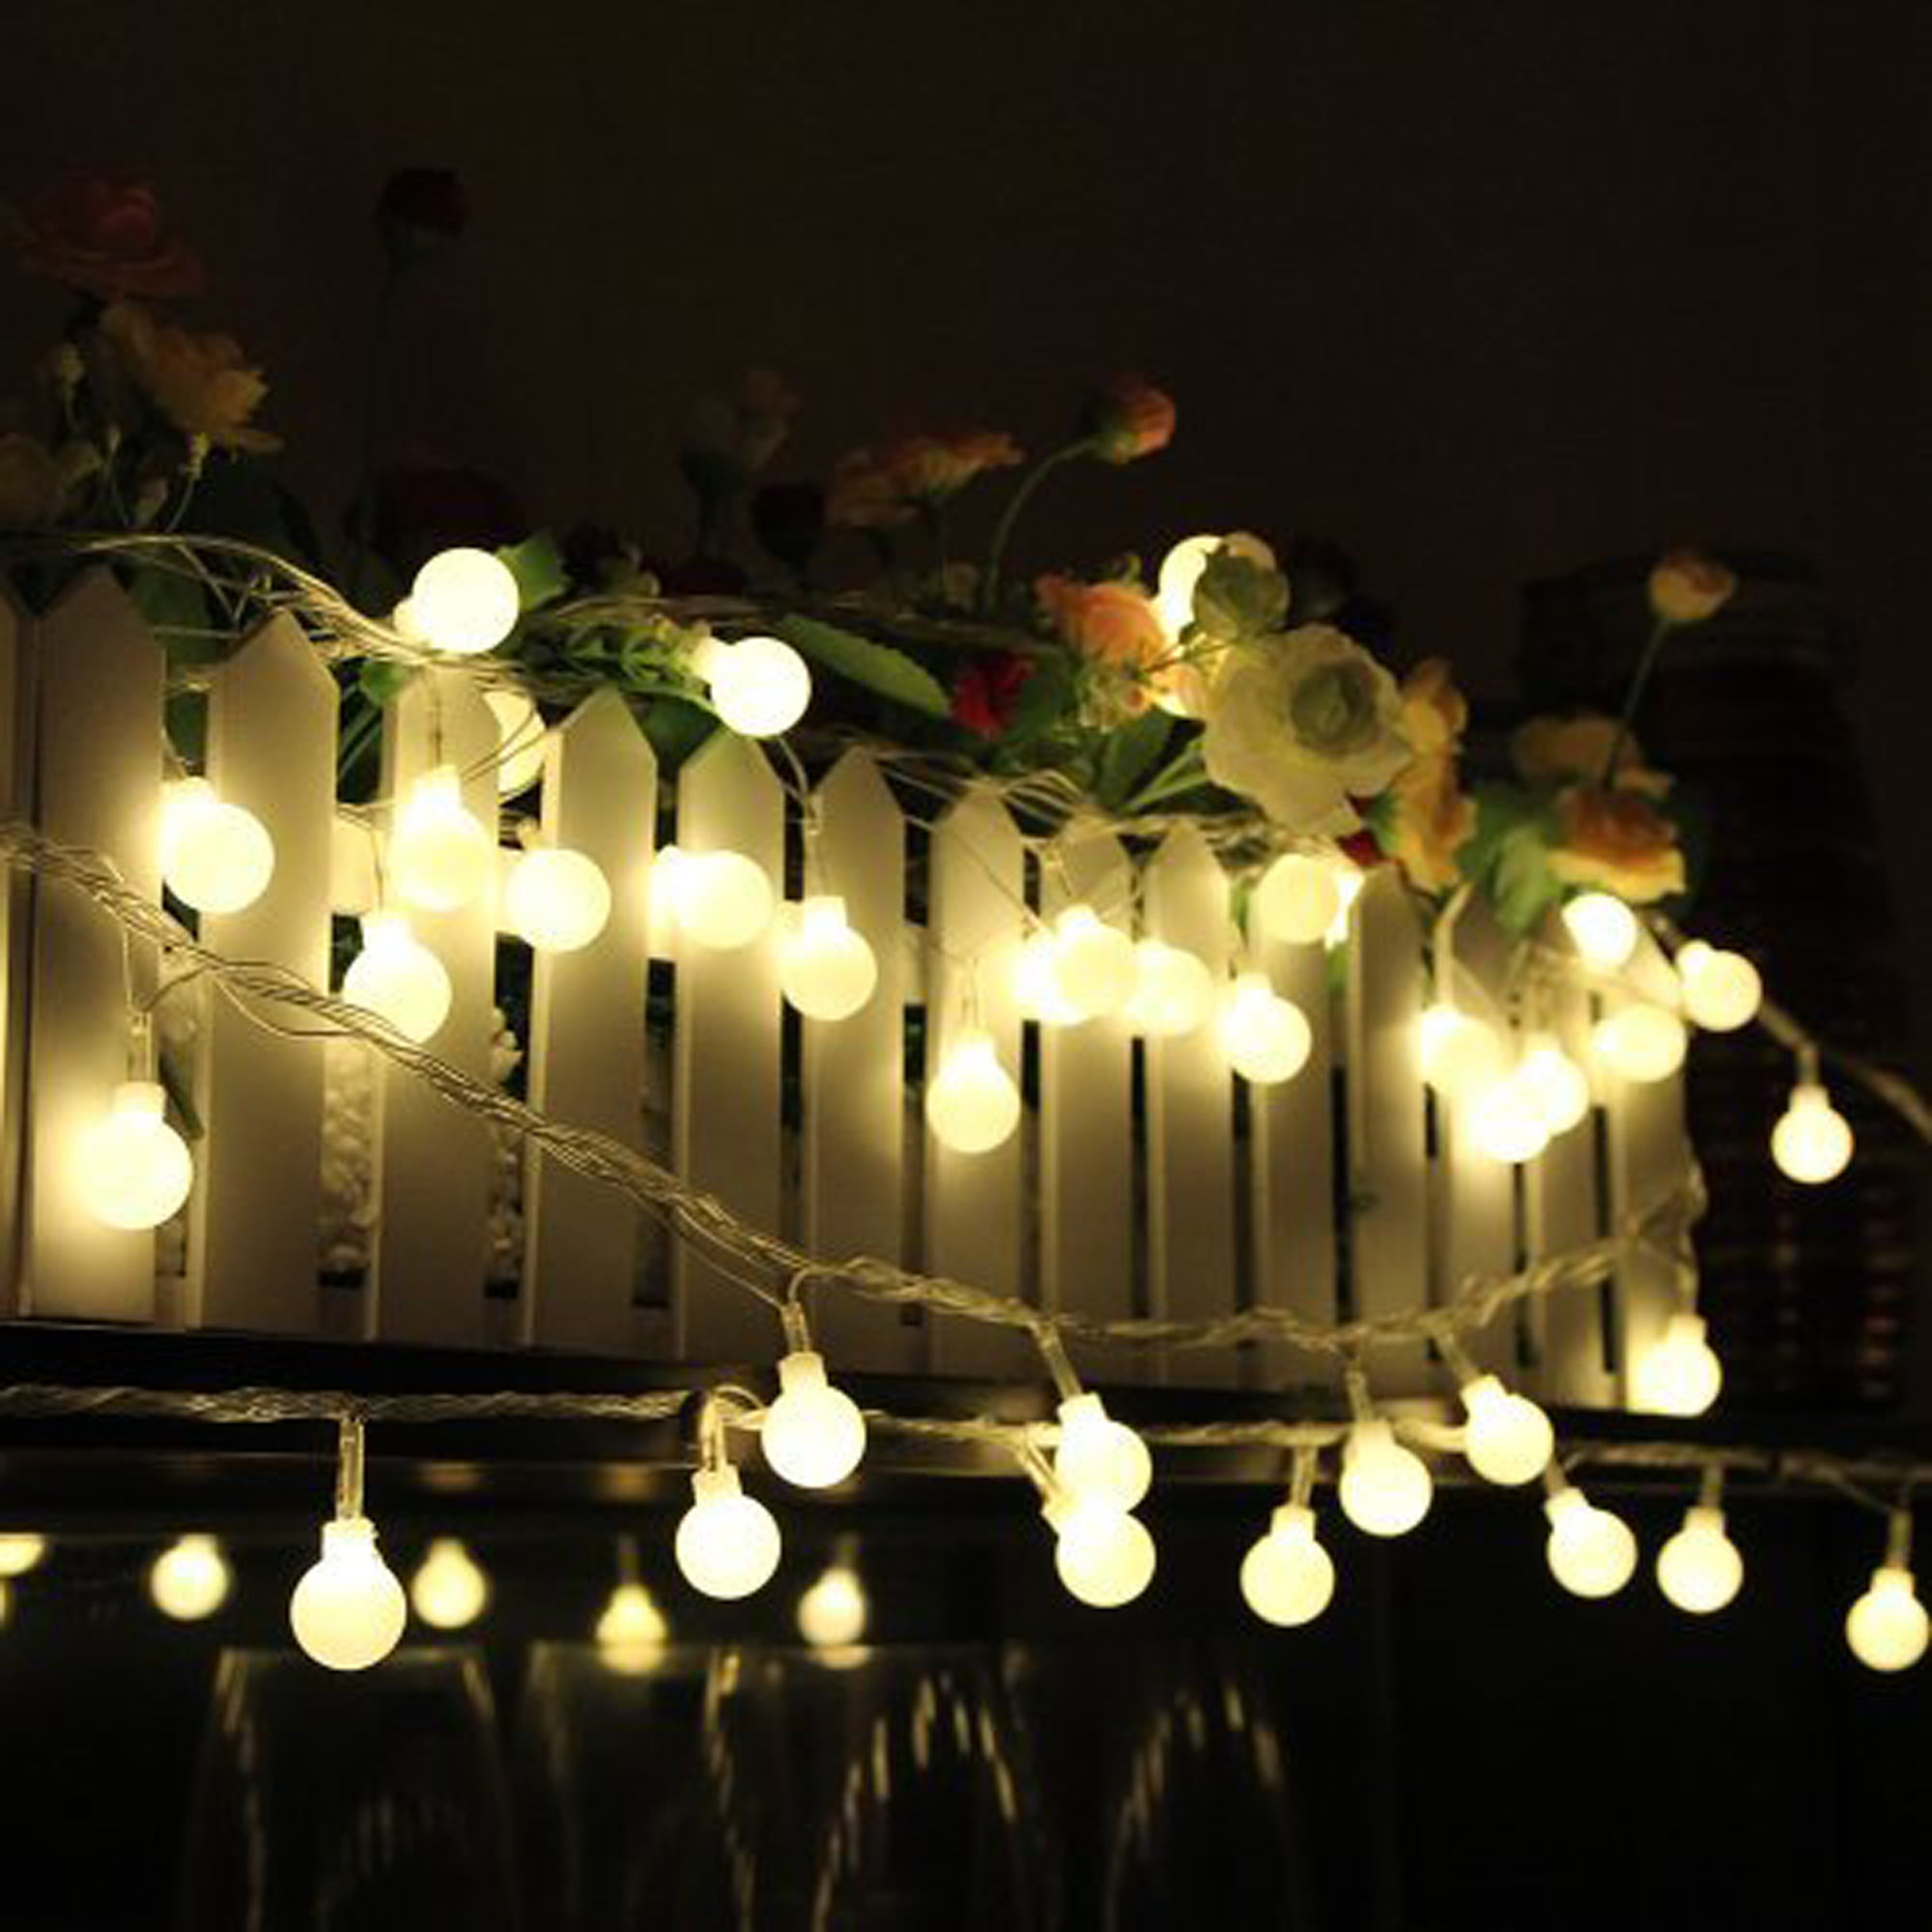 100 led 328ft globe string lights led ball fairy lights for wedding 100 led 328ft globe string lights led ball fairy lights for wedding party warm white walmart workwithnaturefo